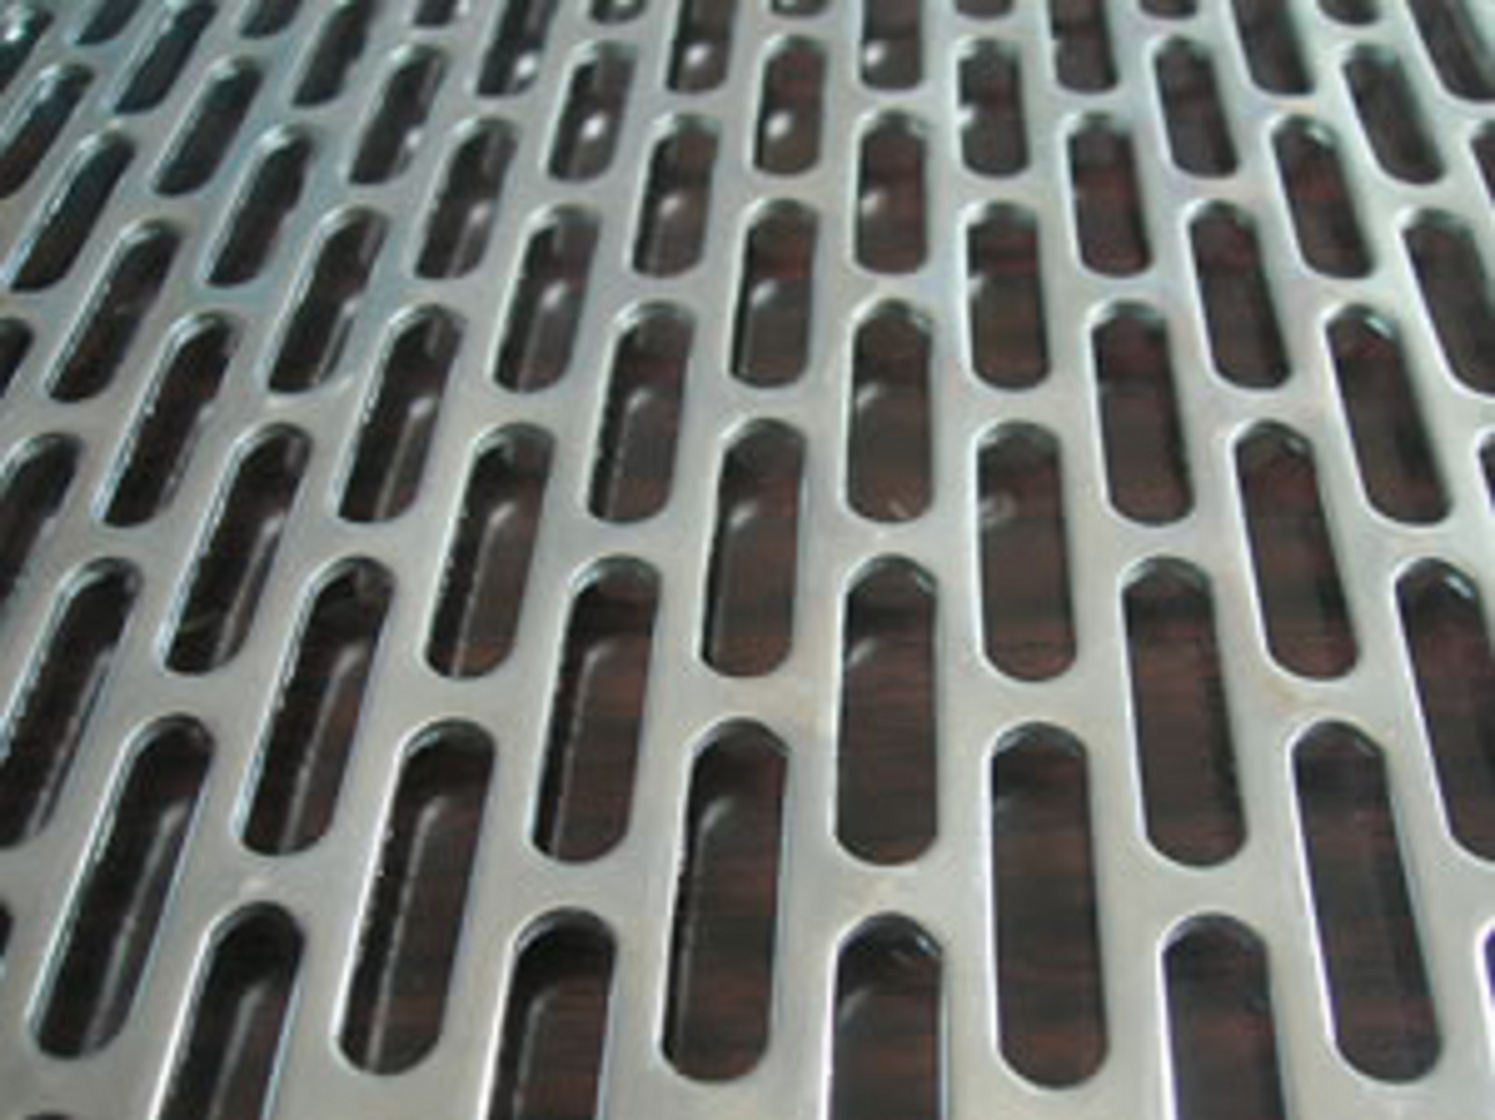 Creative Ways To Use Corrugated Metal In Interior Design likewise Leadingotapps likewise Scrap Metal Prices In Nj Today Marc also Star Coupon 2 Bw Exp 01 01 14 as well allmetalsrecyclingllc. on aluminum wire scrap prices